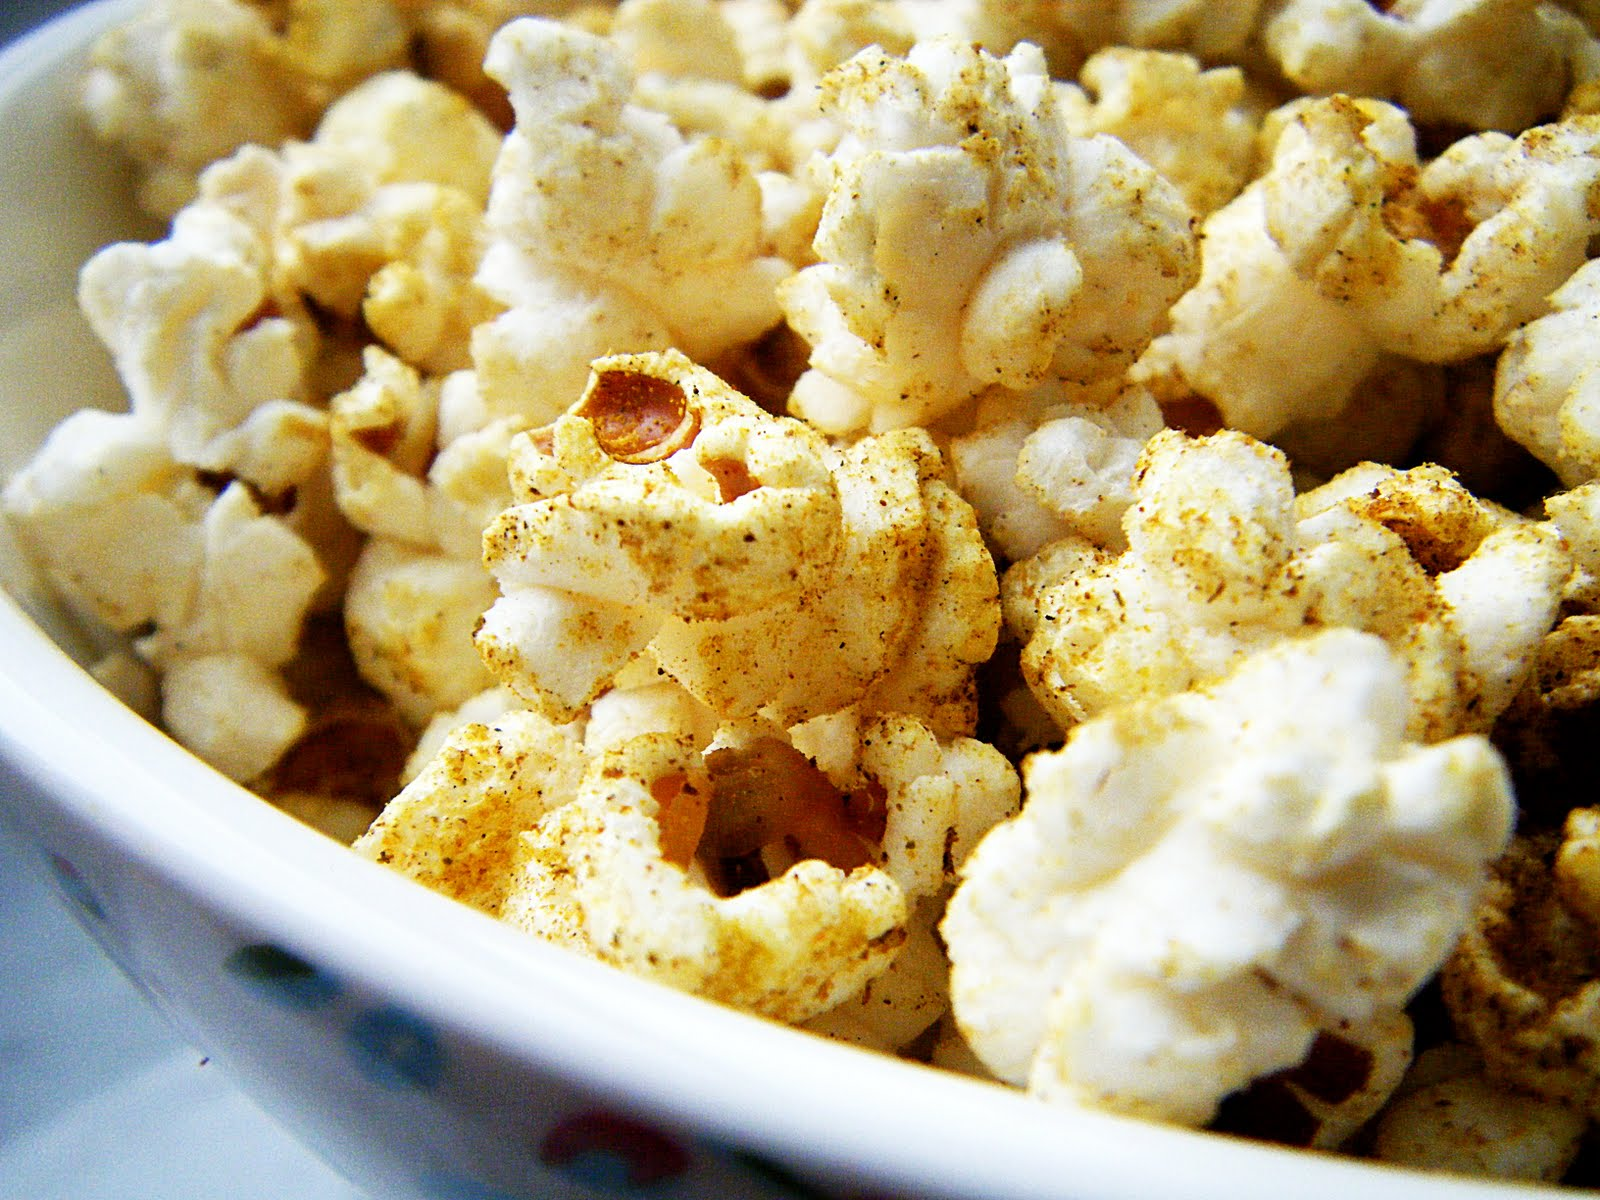 Sugar and Spice: Spicy Popcorn